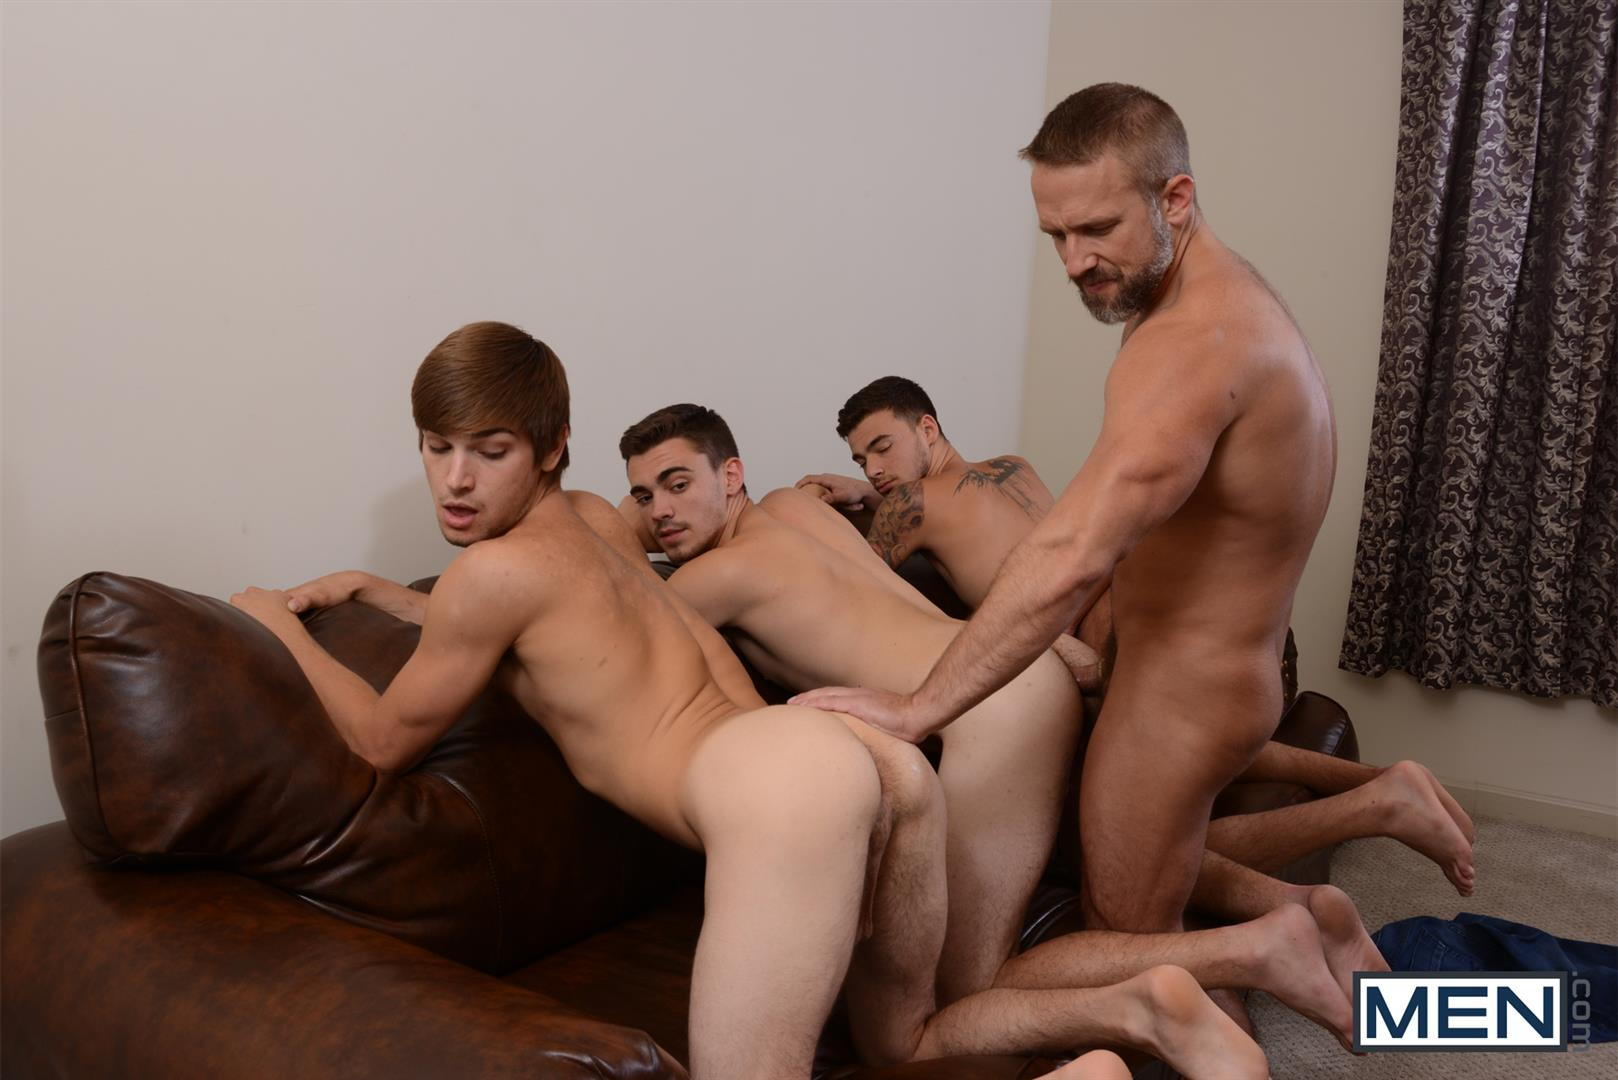 Men Jizz Orgy Asher Hawk and Dirk Caber and Johnny Rapid and Trevor Spade Triple Penetrated In the Ass Amateur Gay Porn 13 Stepfather Dirk Caber Gets TRIPLE Penetrated By His Stepsons